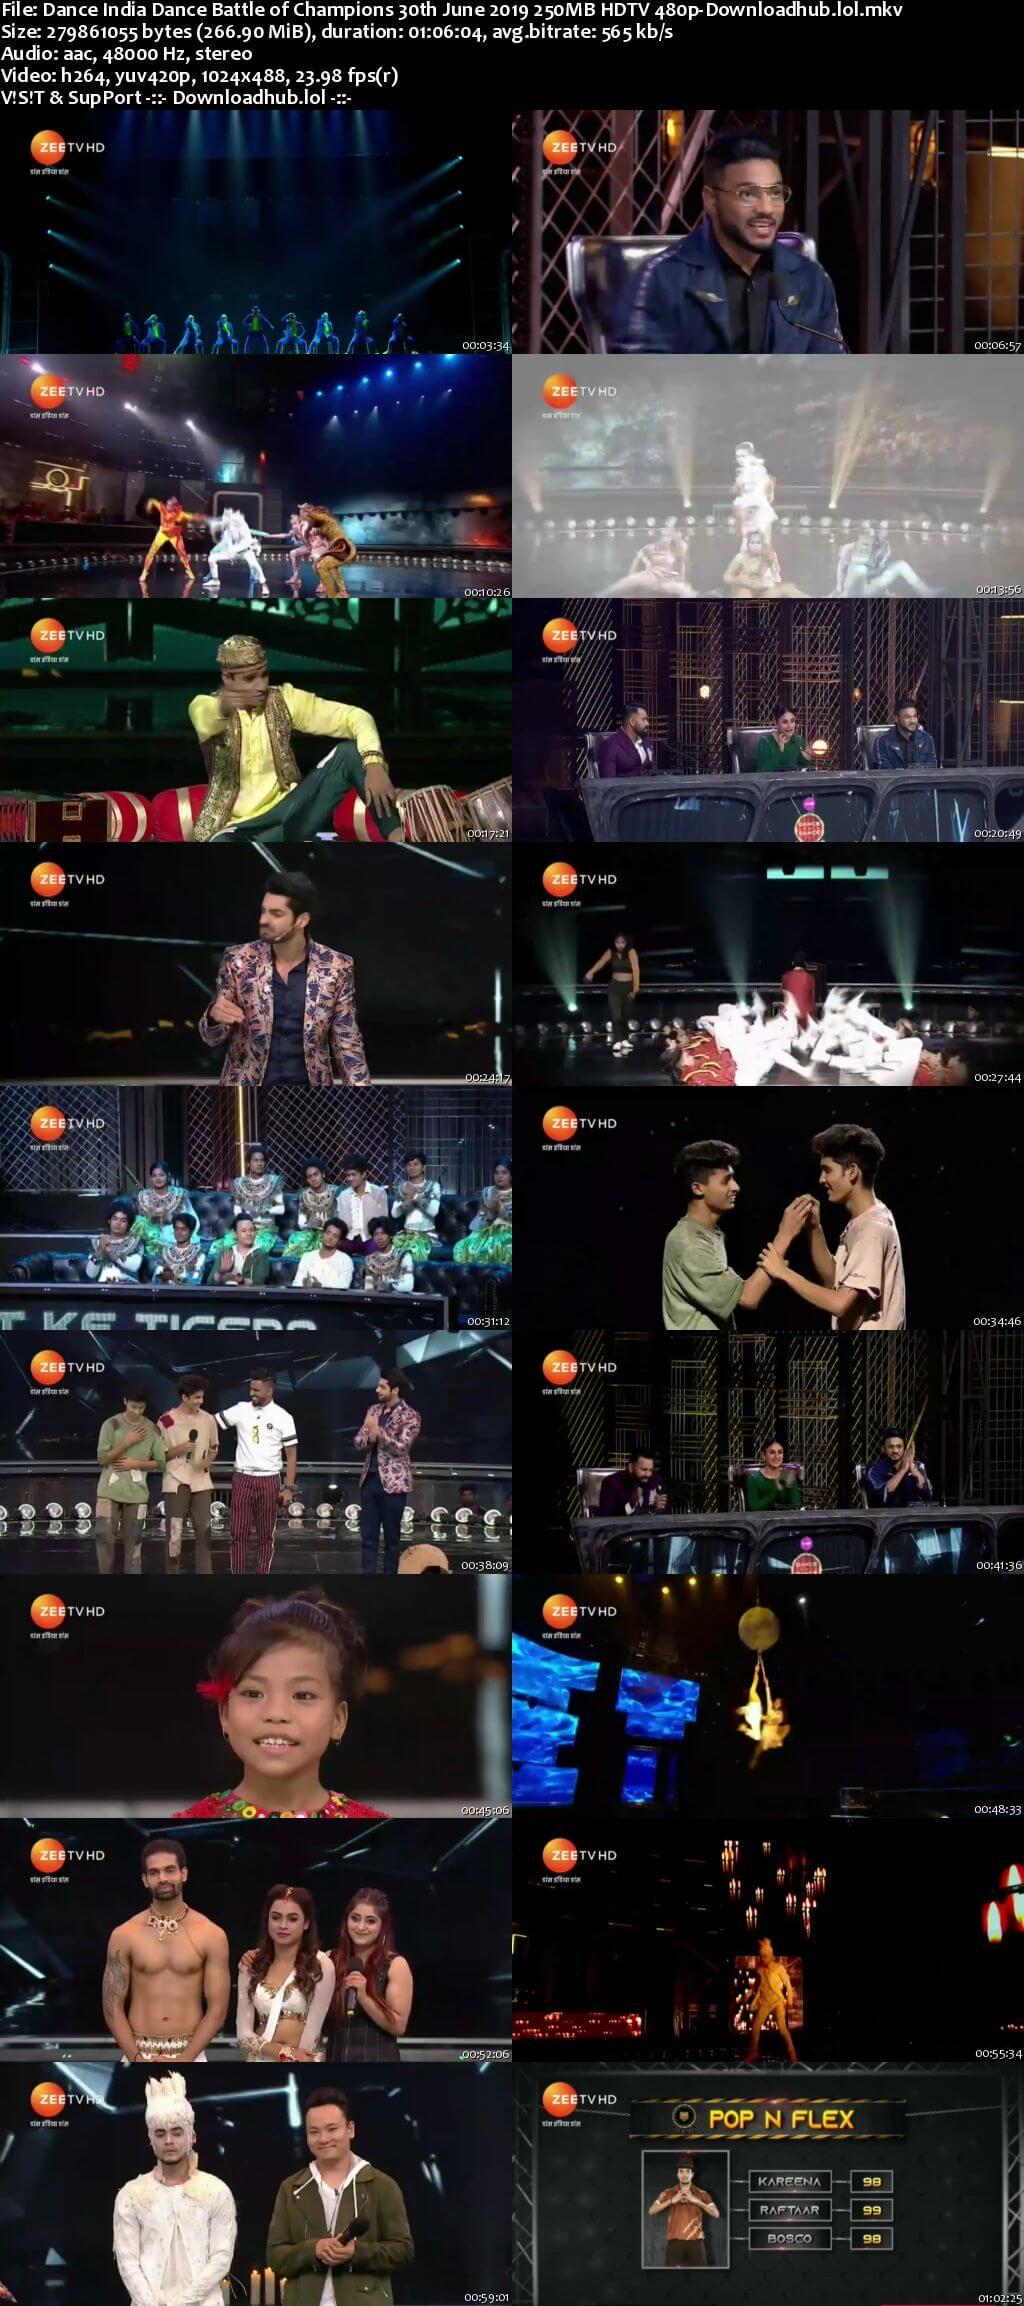 Dance India Dance Battle of Champions 30th June 2019